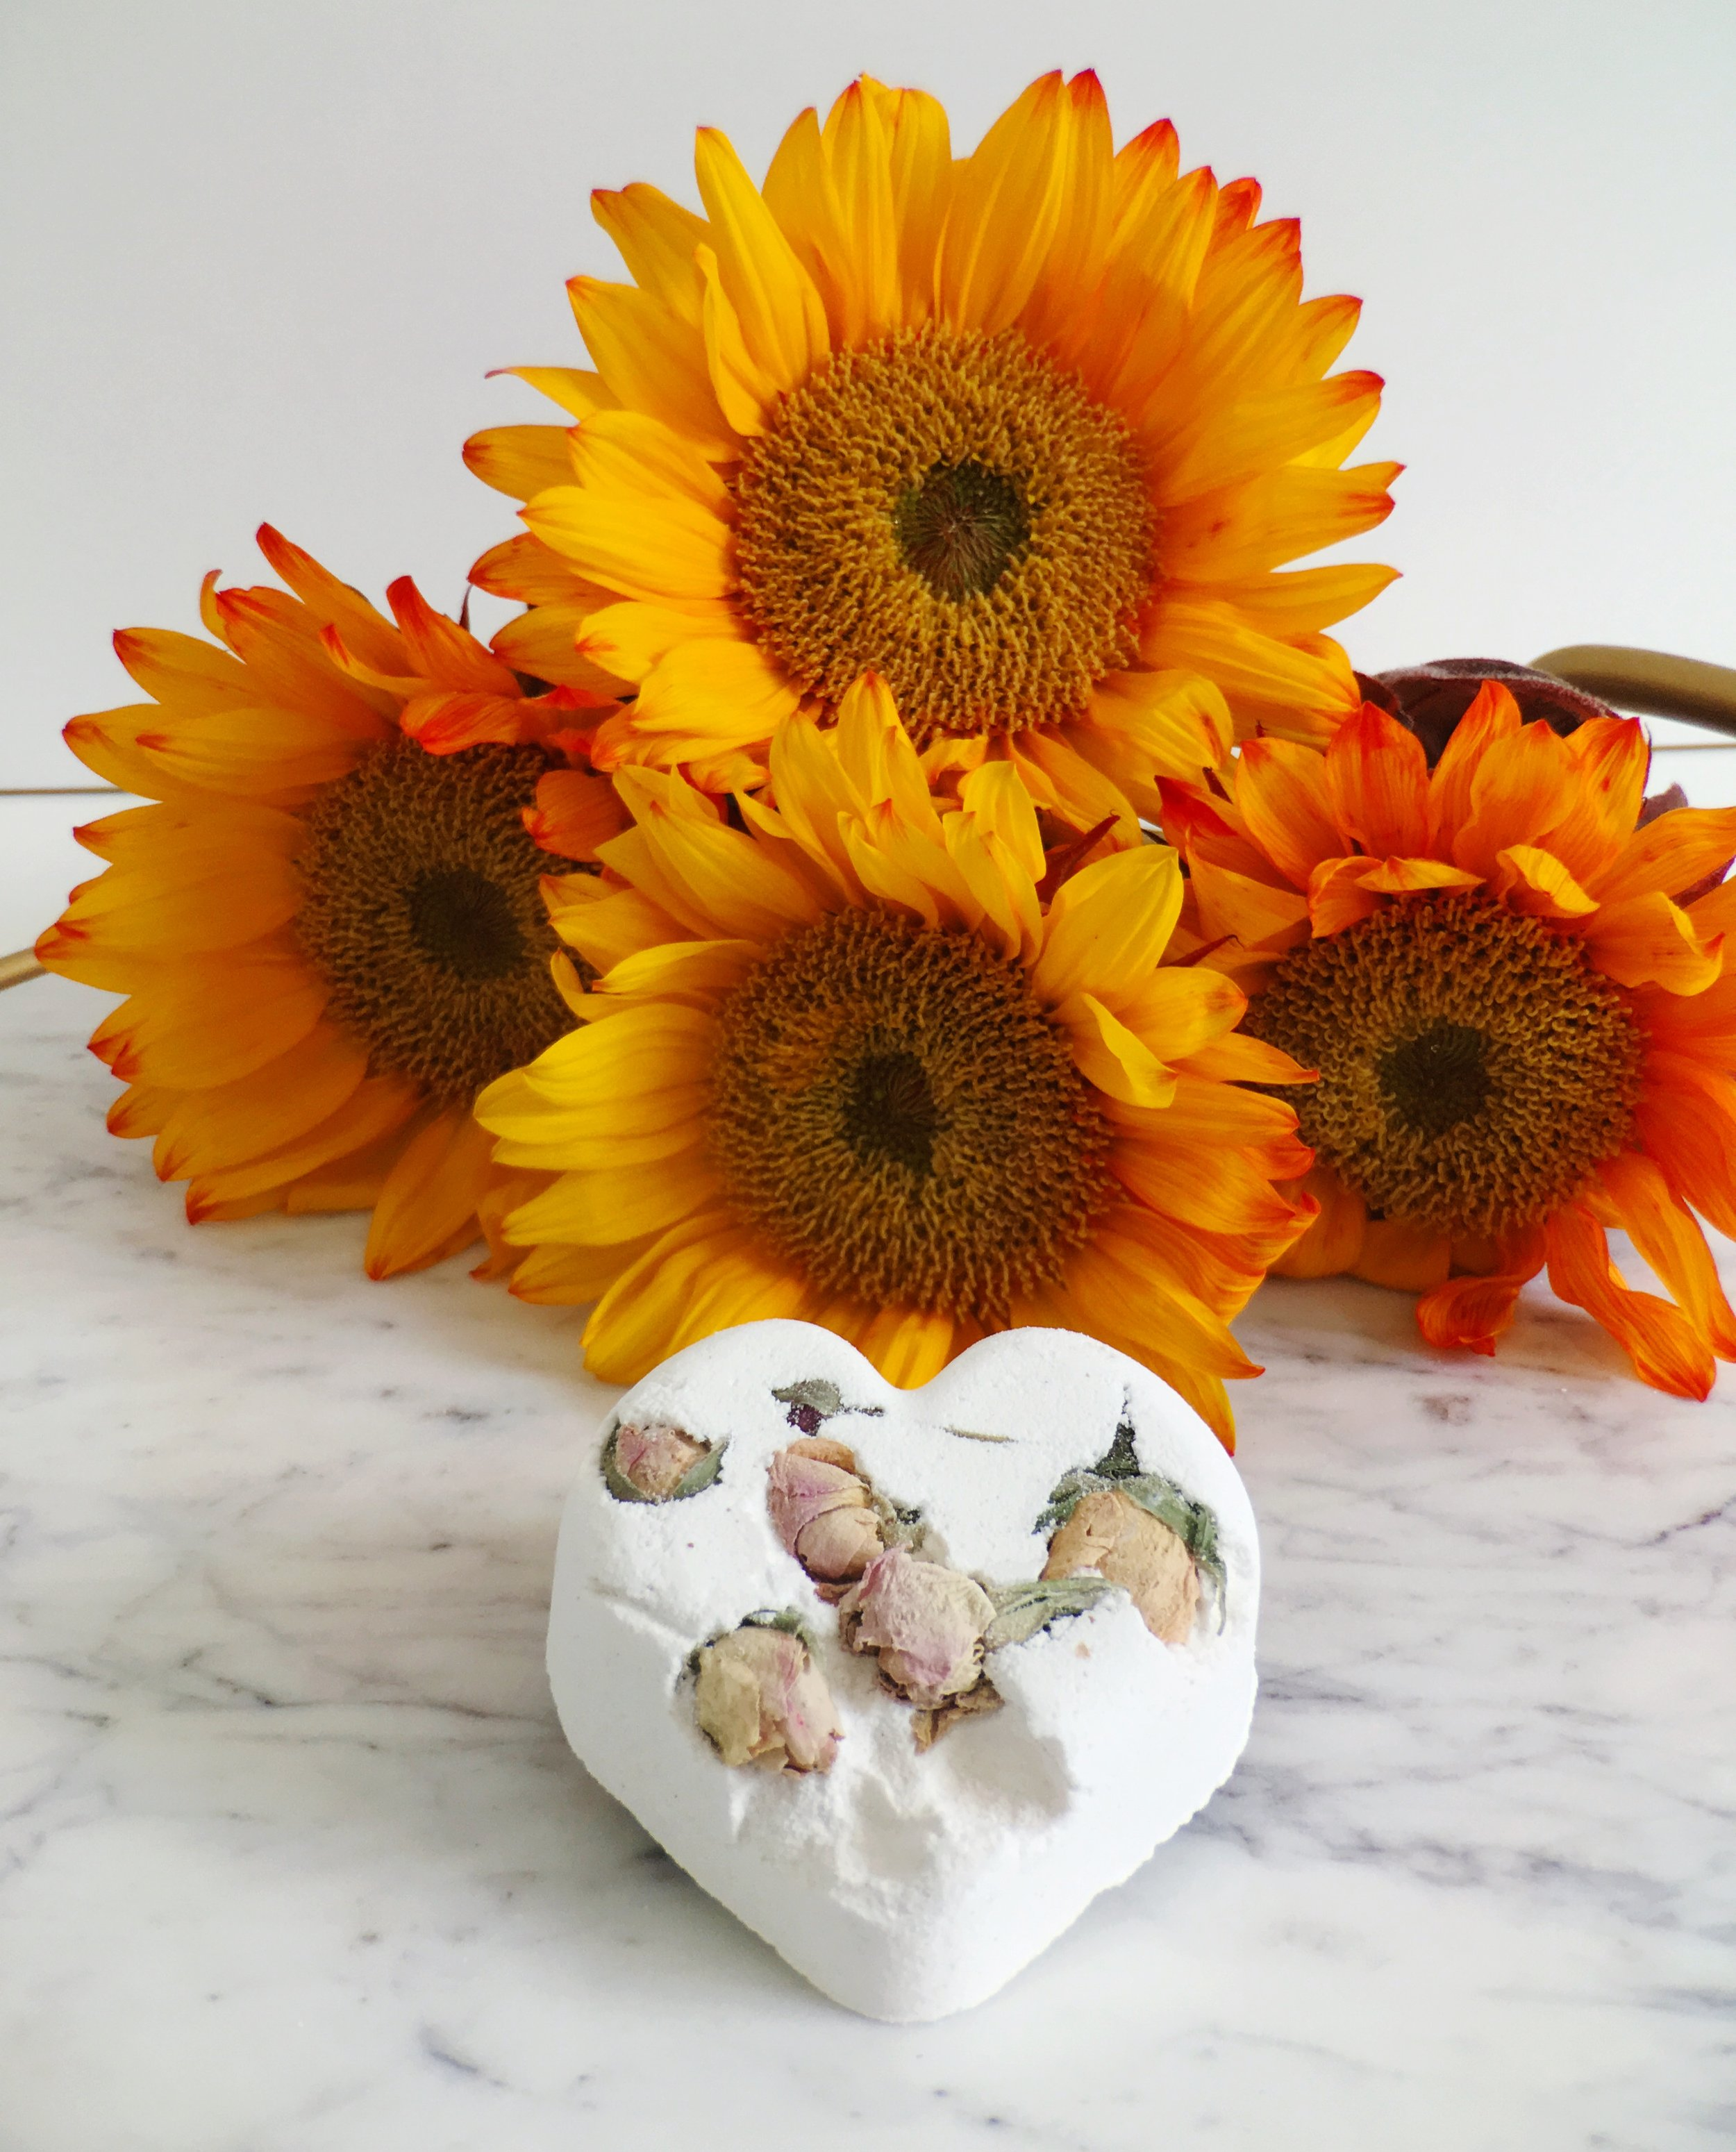 Sun Flowers on a Marble Table Top with a Lush Cosmetics Bath Bomb. Titsy Totsy includes dried roses